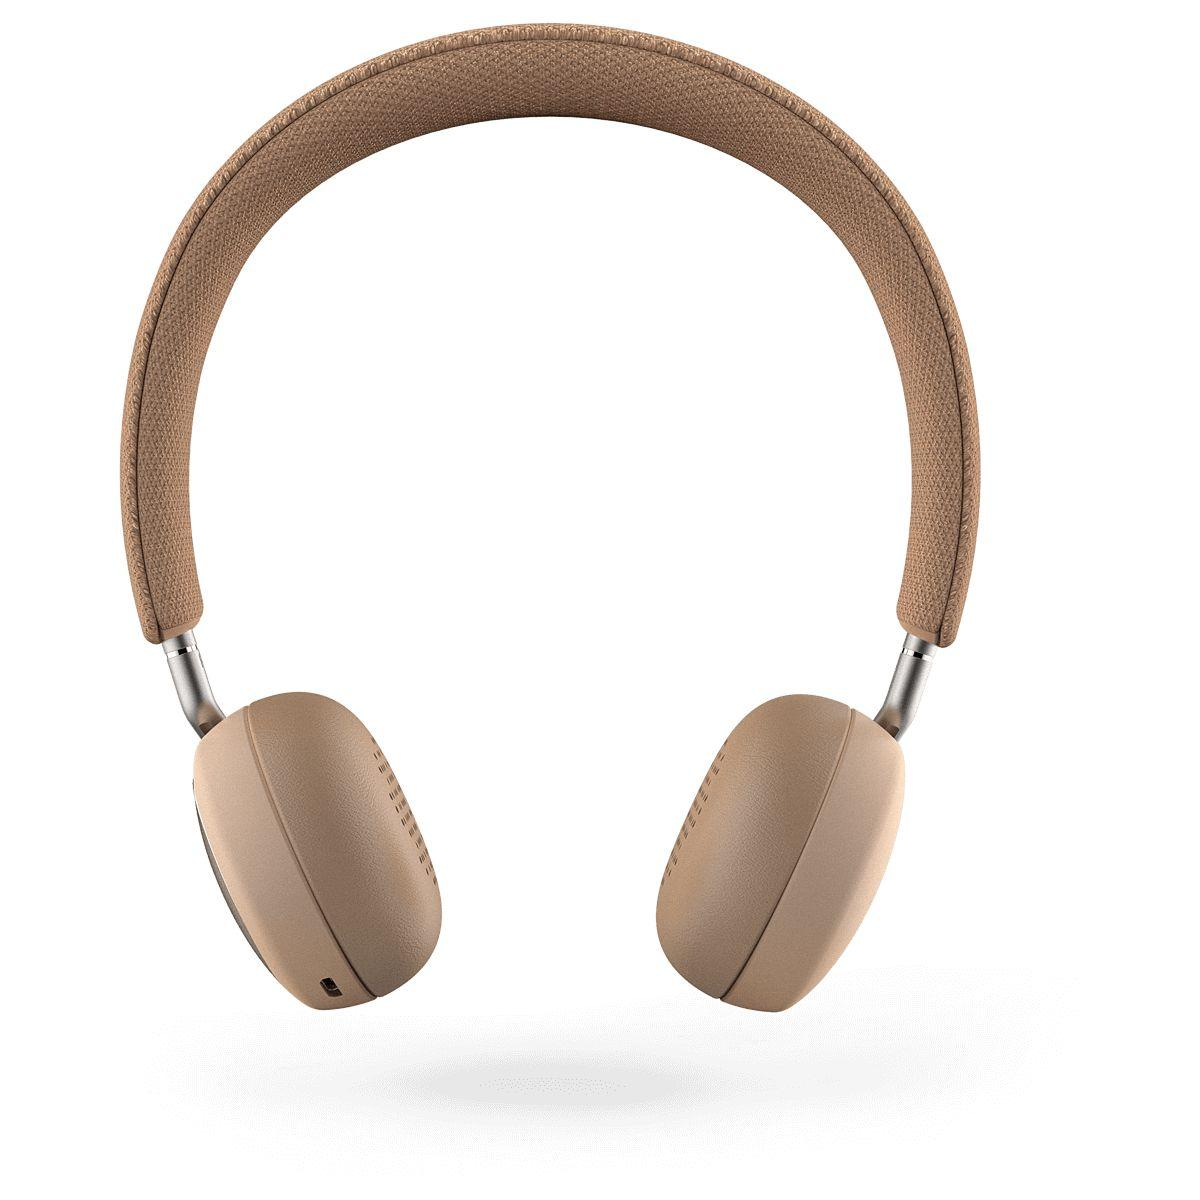 Casque libratone q adapt on-ear or - 7% de remise imm�diate avec le code : noel7 (photo)